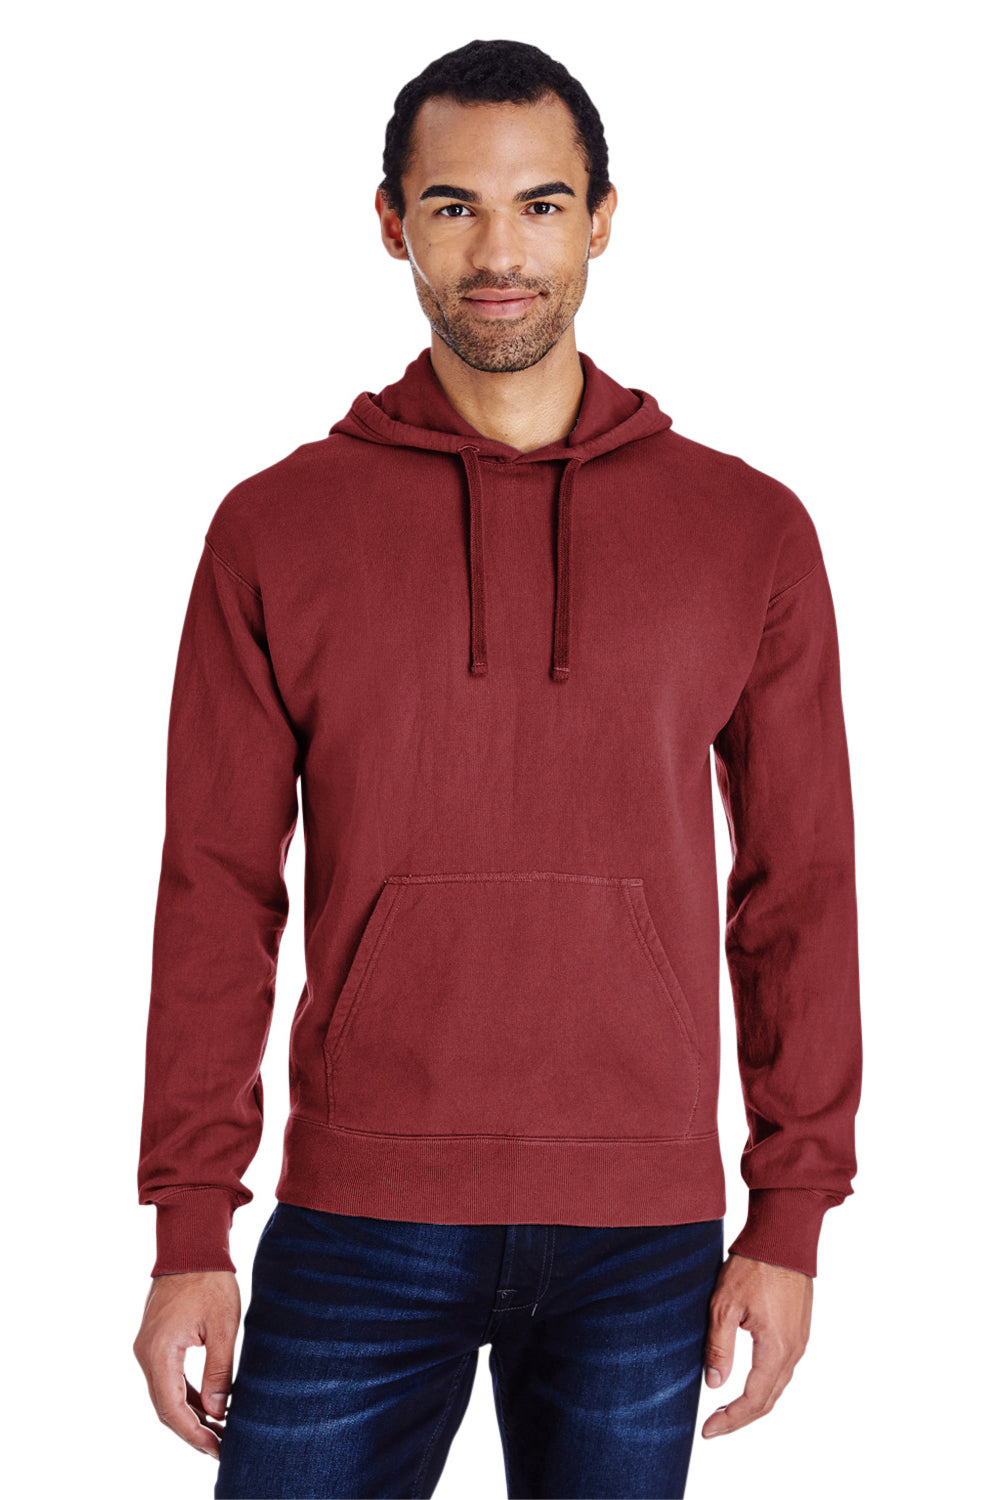 ComfortWash by Hanes GDH450 Hooded Sweatshirt Hoodie Cayenne Red Front